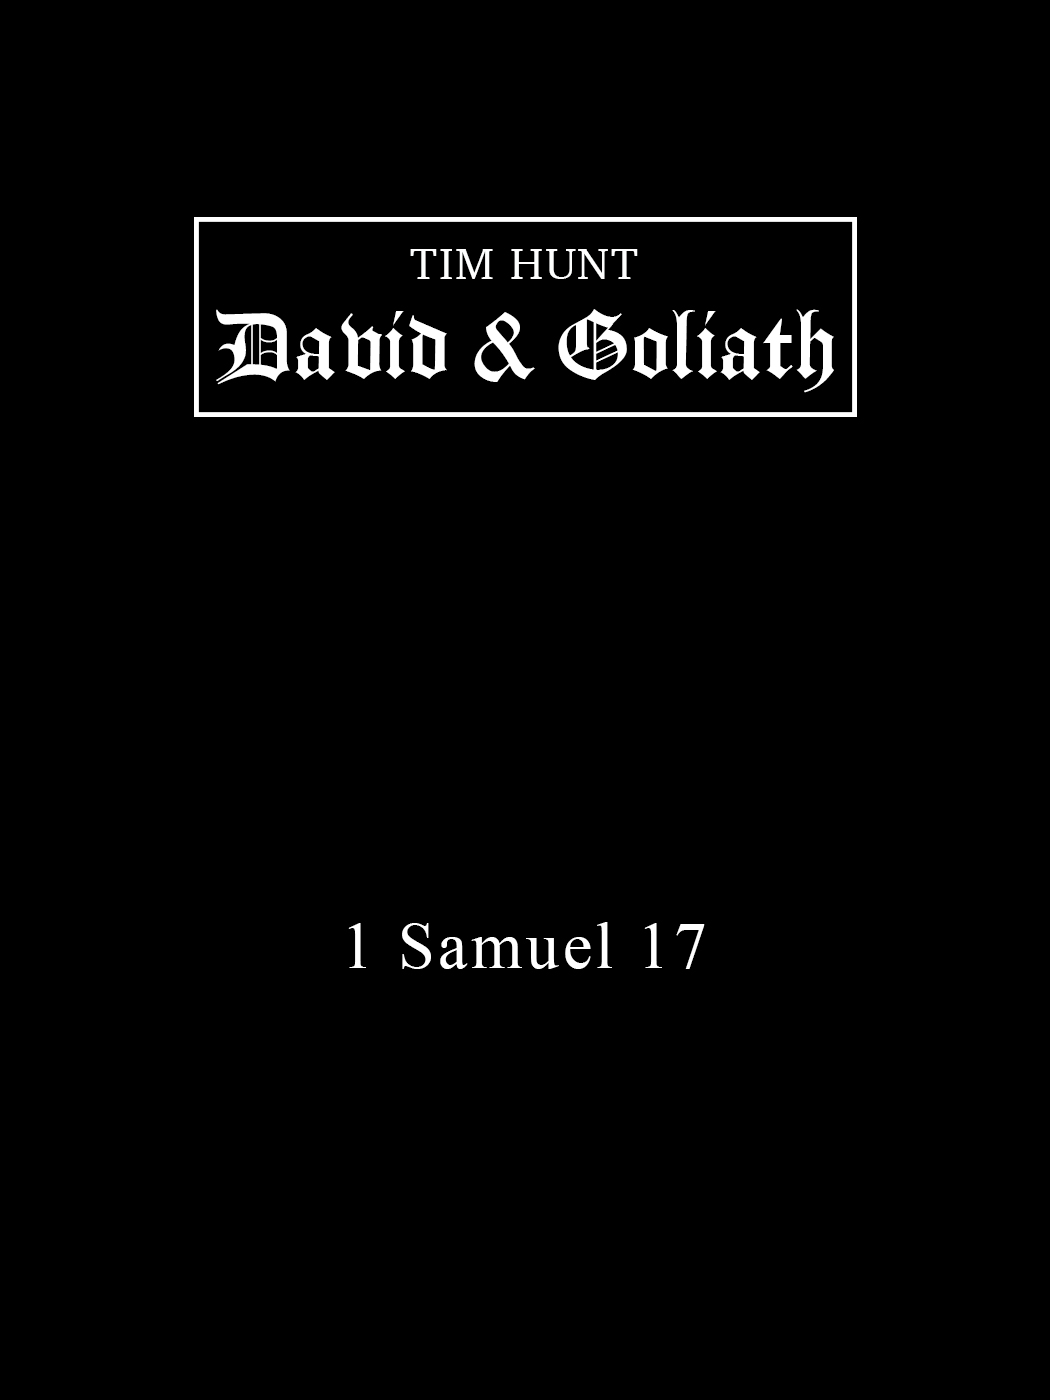 david_and_goliath_front_1400px.jpg